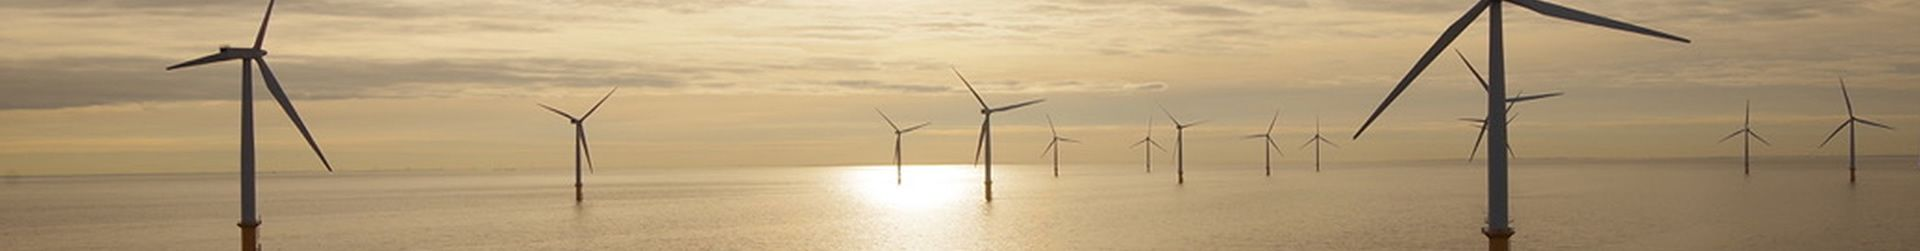 Offshore Windfarm Yellow Sky Banner